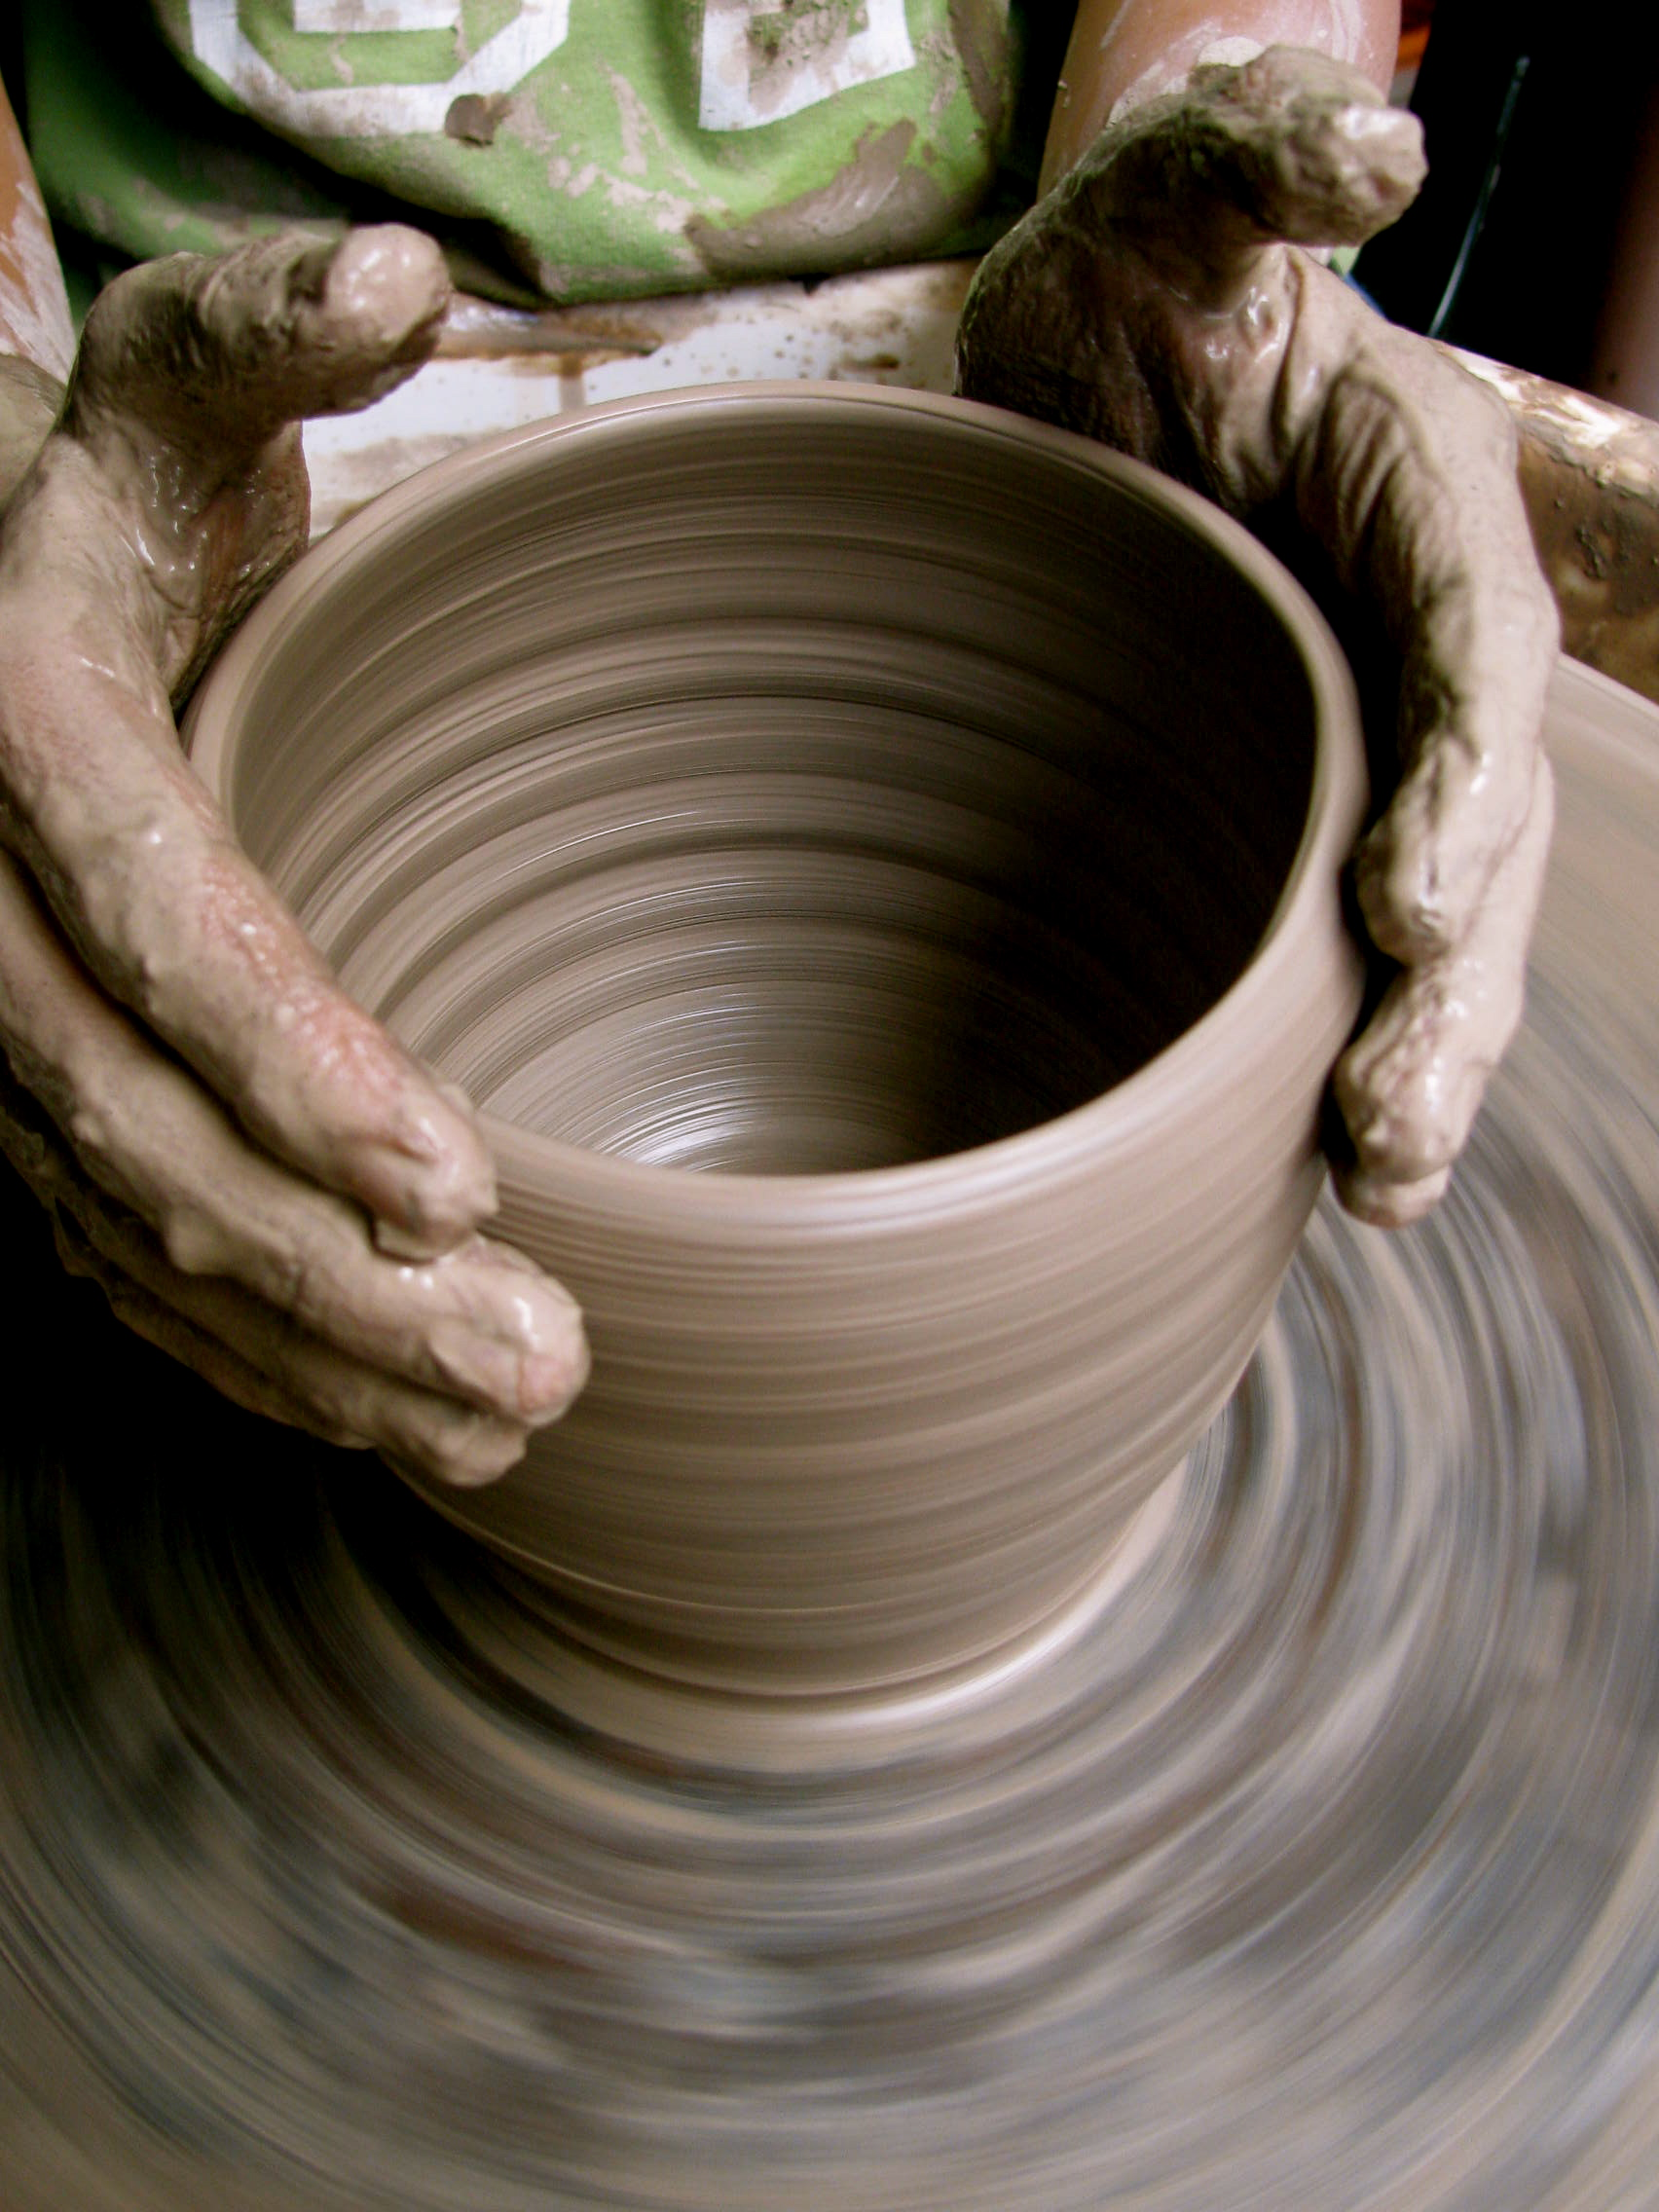 Hands working on a piece of pottery